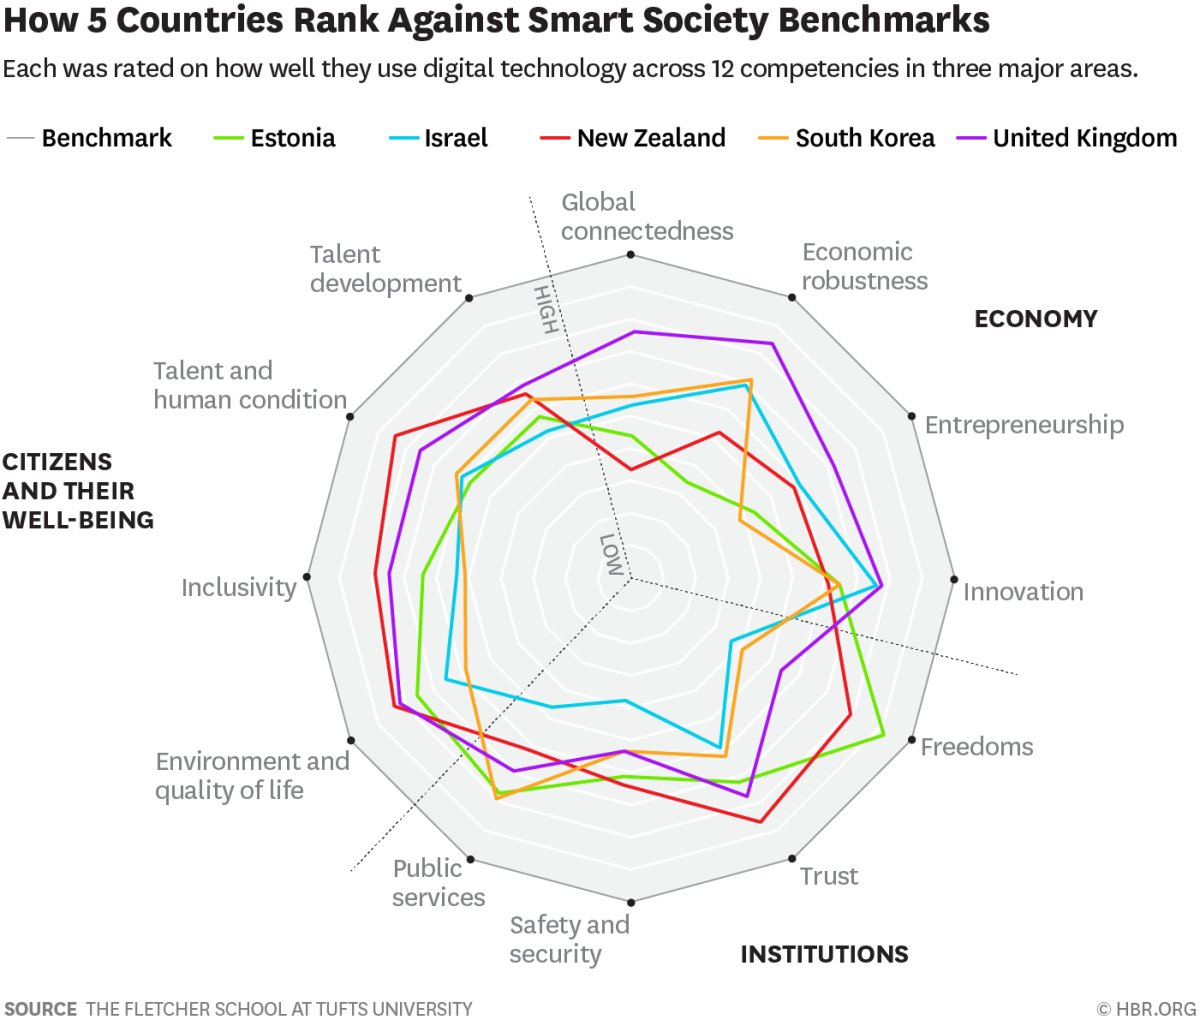 #BestOf: The society of the future looks nothing like you might imagine  http:// wef.ch/2yt4atJ  &nbsp;   #economies<br>http://pic.twitter.com/D1AzngToUt